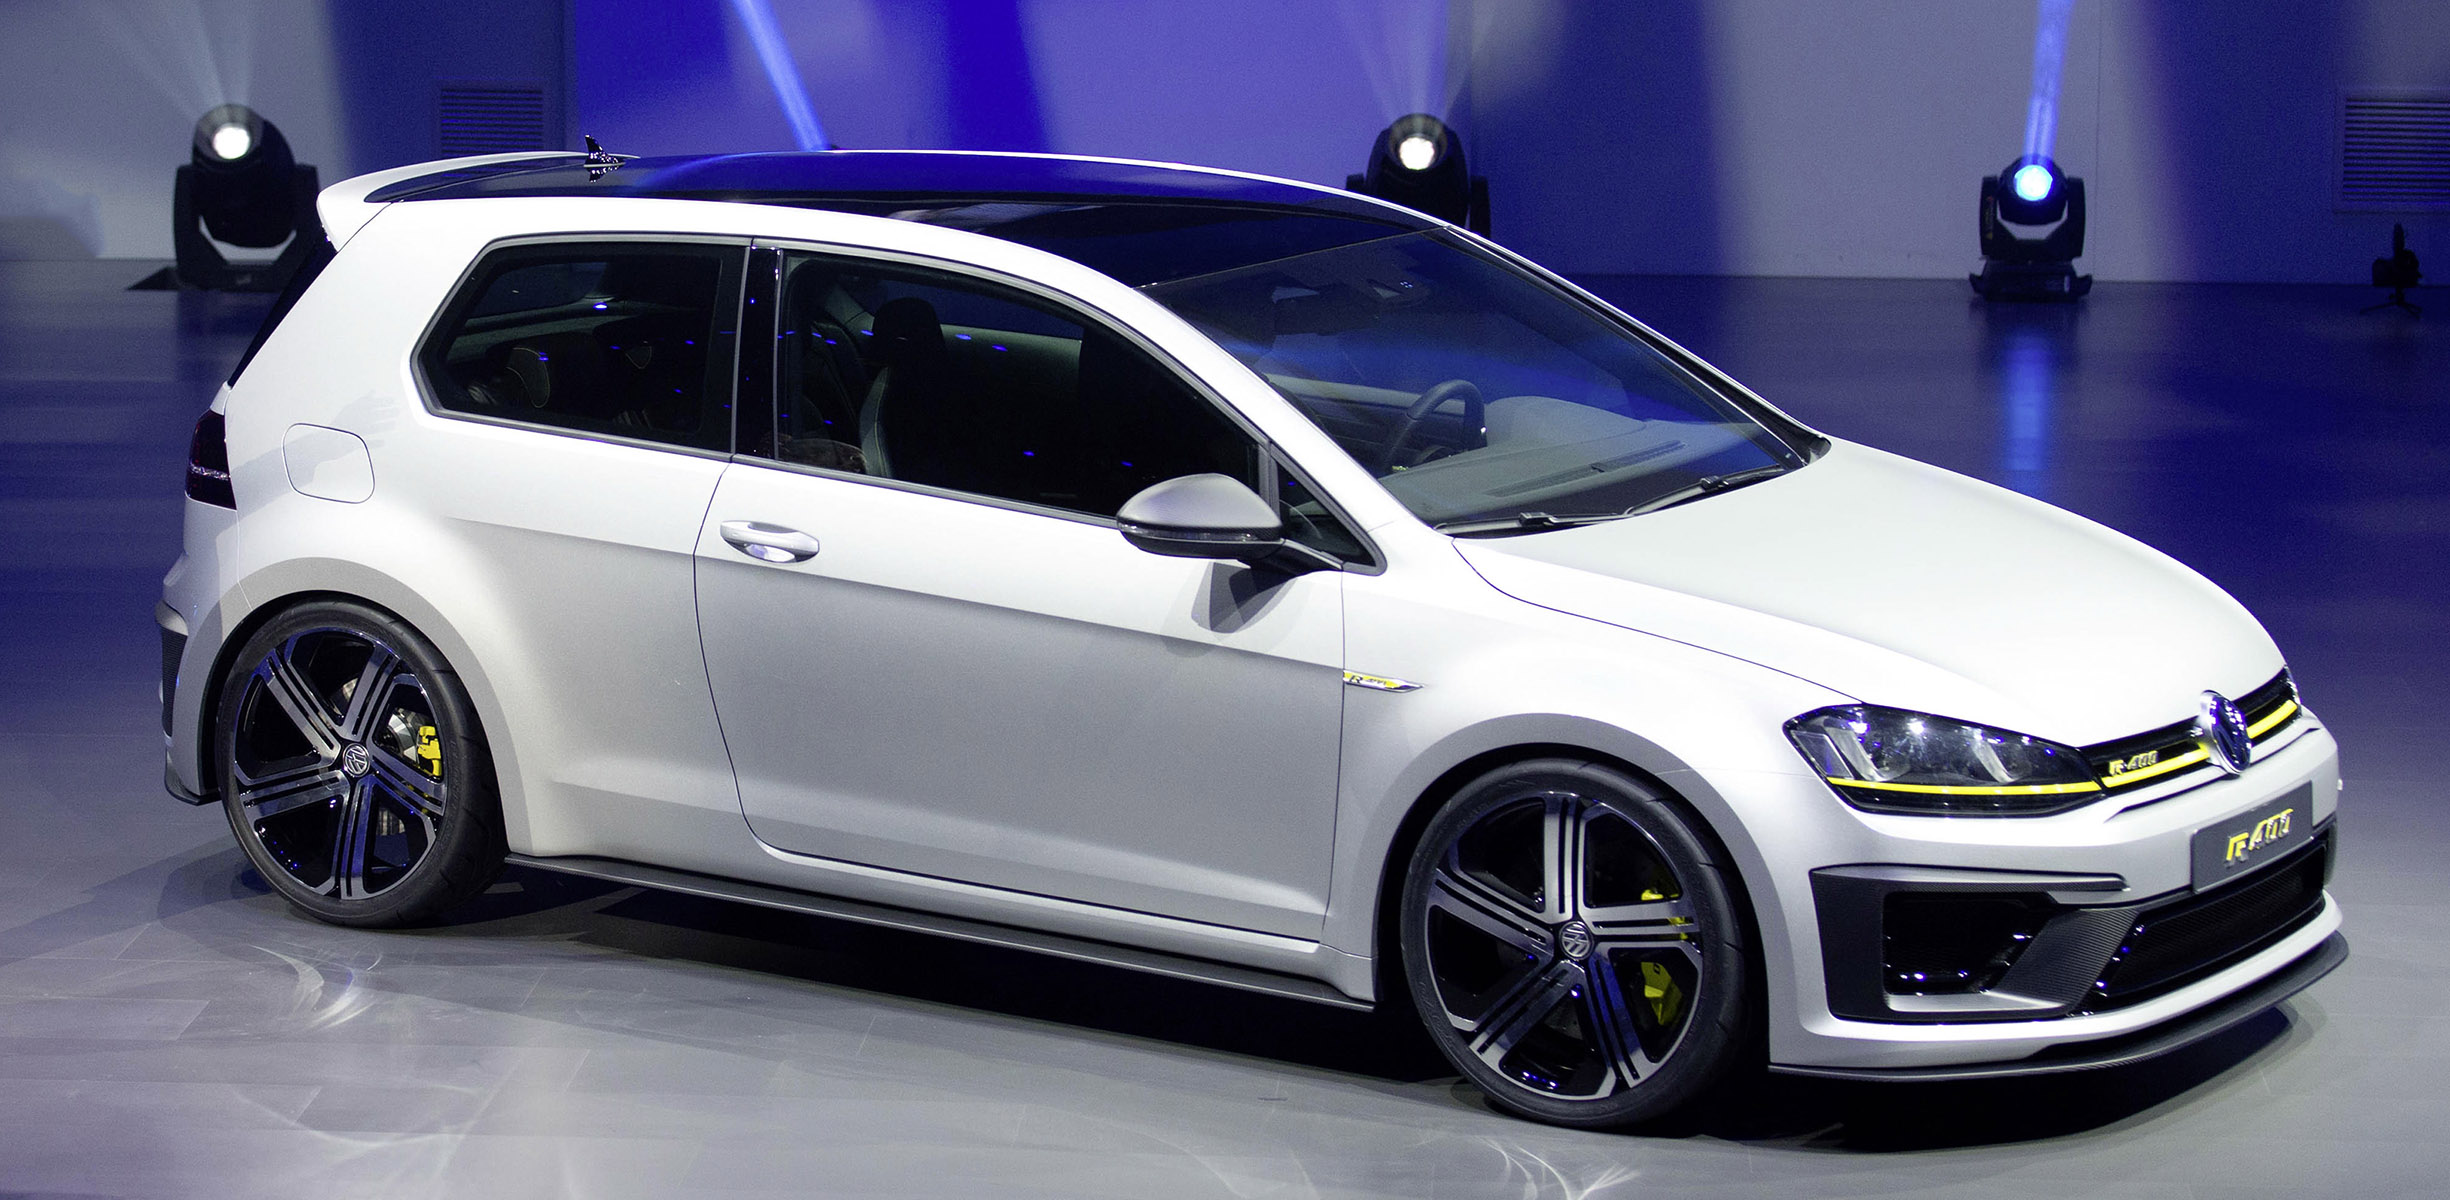 Volkswagen Golf R400 Being Readied For Late 2015 Launch